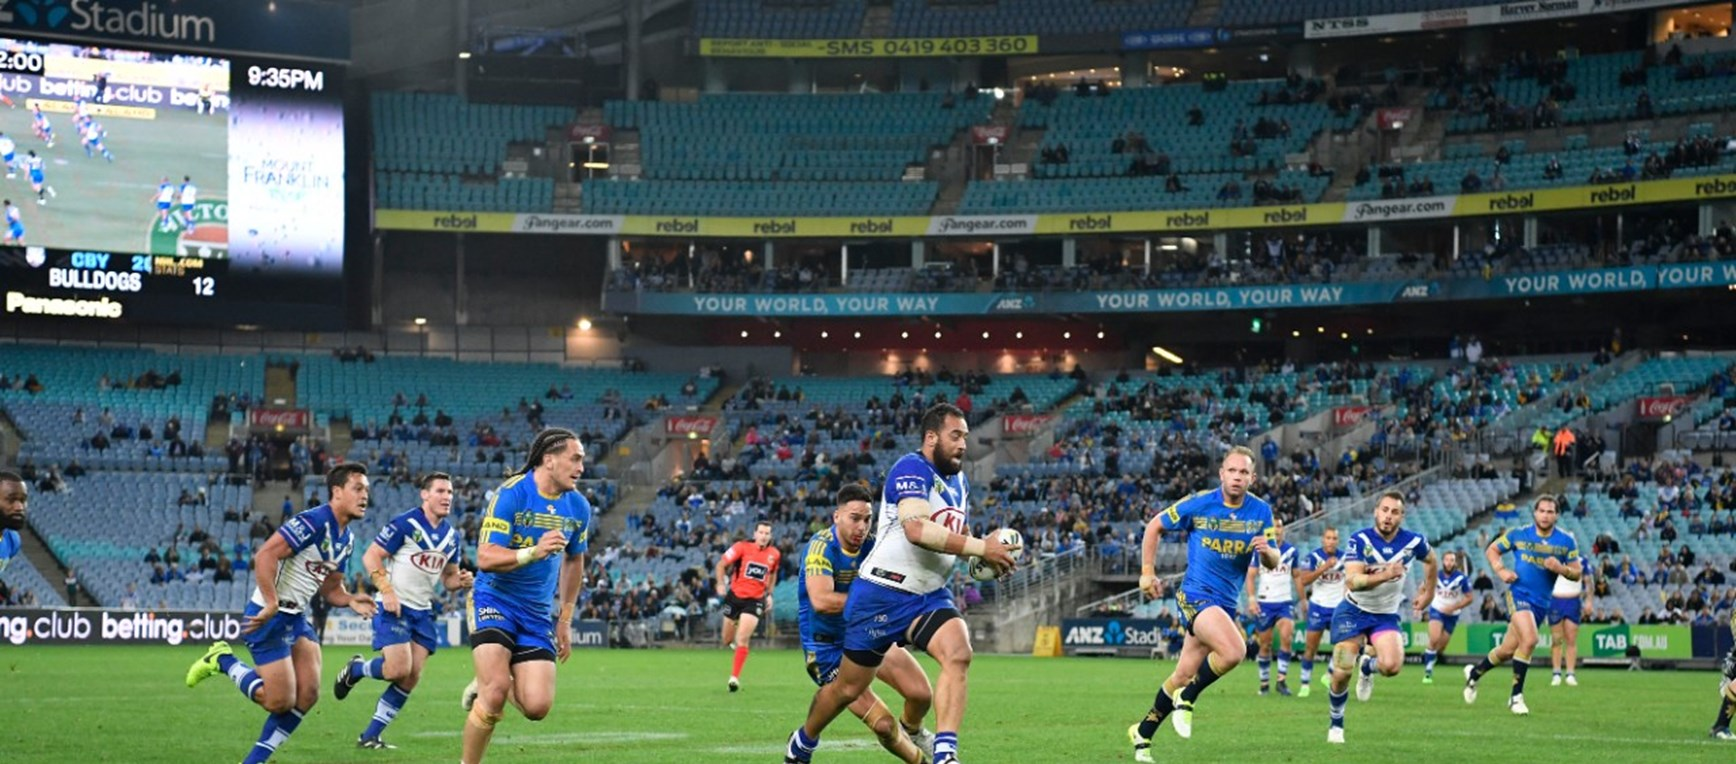 GALLERY: Eels Game Round 17